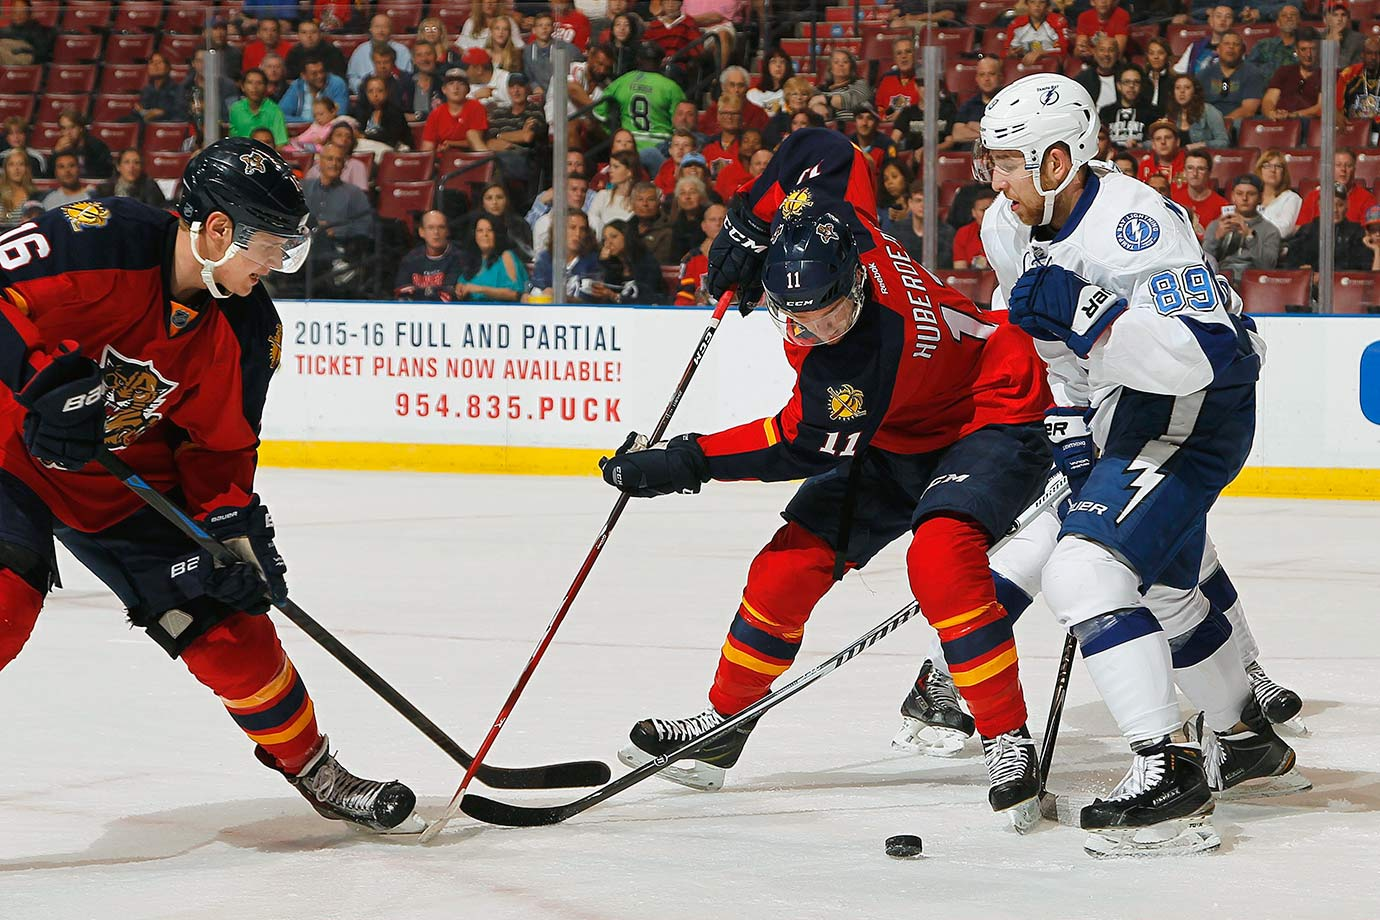 The Panthers are counting on their maturing young core to bridge the seven-point gap that separated them from the playoffs last season. It might work—both Sasha Barkov and Jonathan Huberdeau are poised for big years—but kids like these come with no guarantees. If they do make the cut, their D will make for a short stay. Asking Willie Mitchell to play top-four minutes is courting disaster.